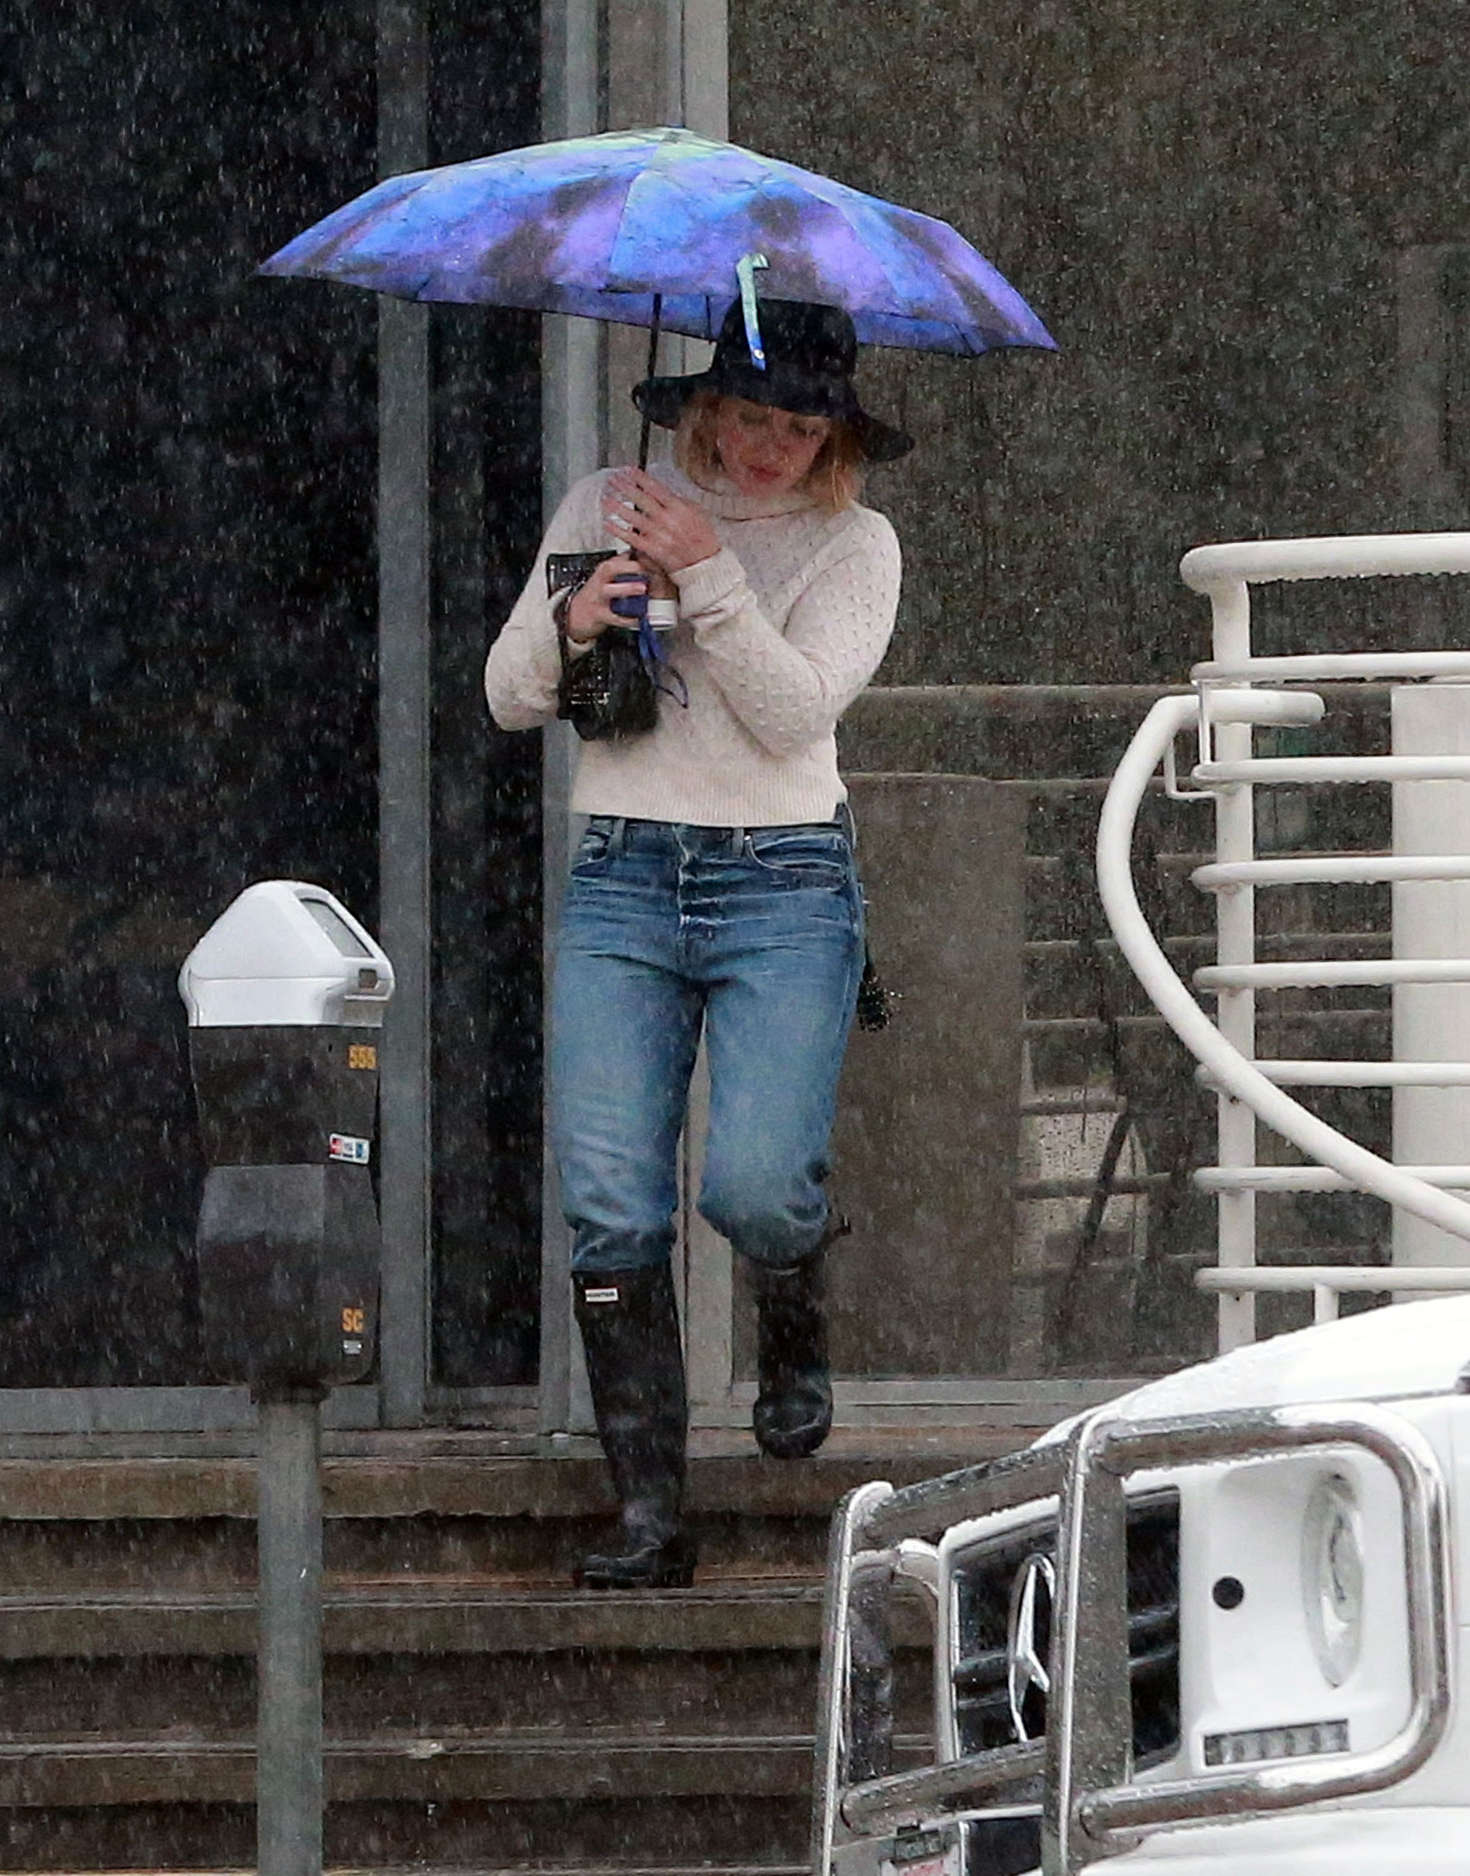 Hilary Duff 2016 : Hilary Duff in Jeans out on a rainy day -31